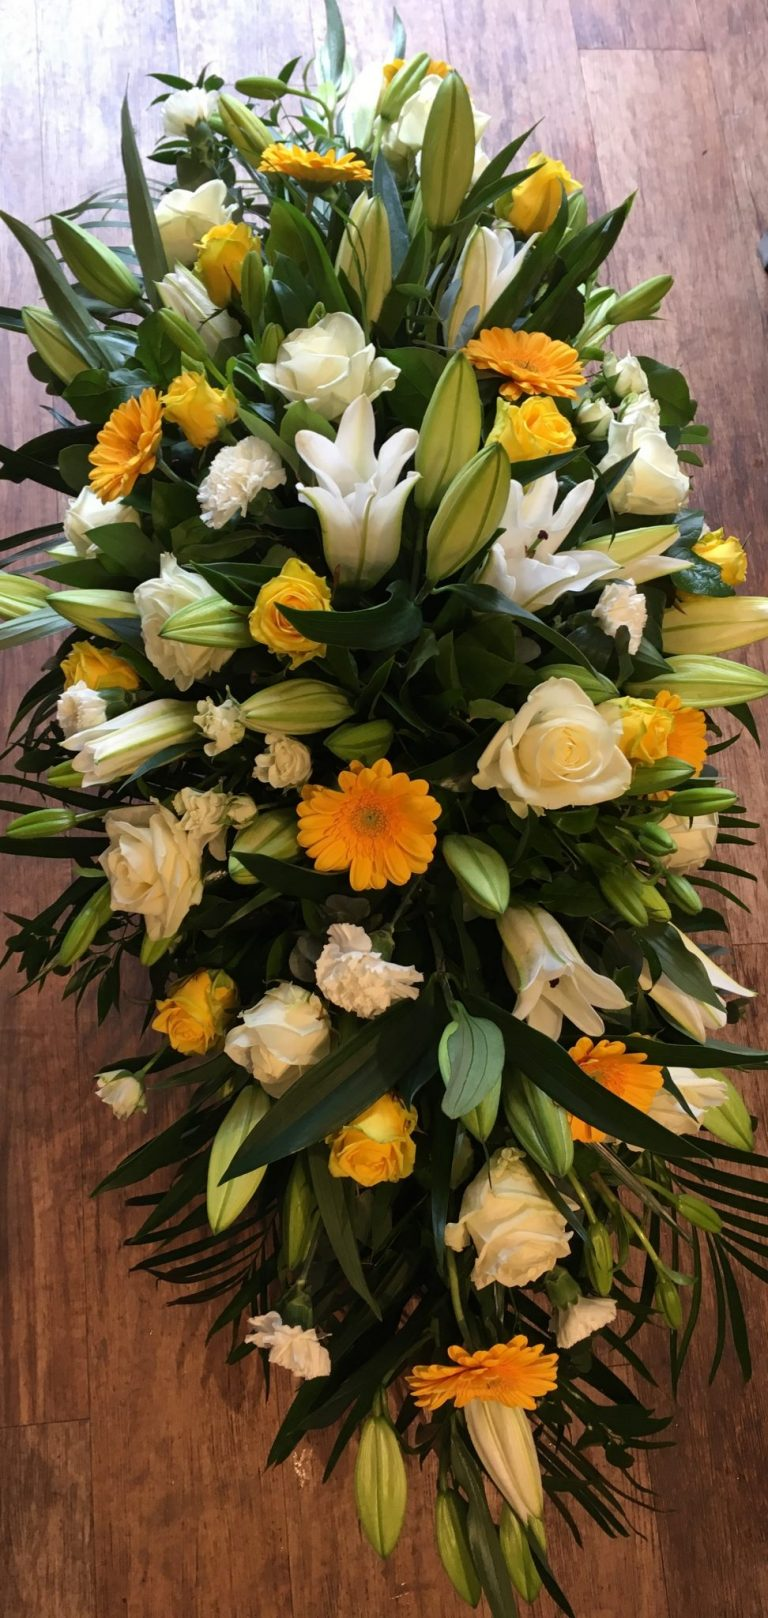 Double Ended Spray-yellow and whiteDouble Ended Spray- yellow & white - All About Flowers Online Ordering